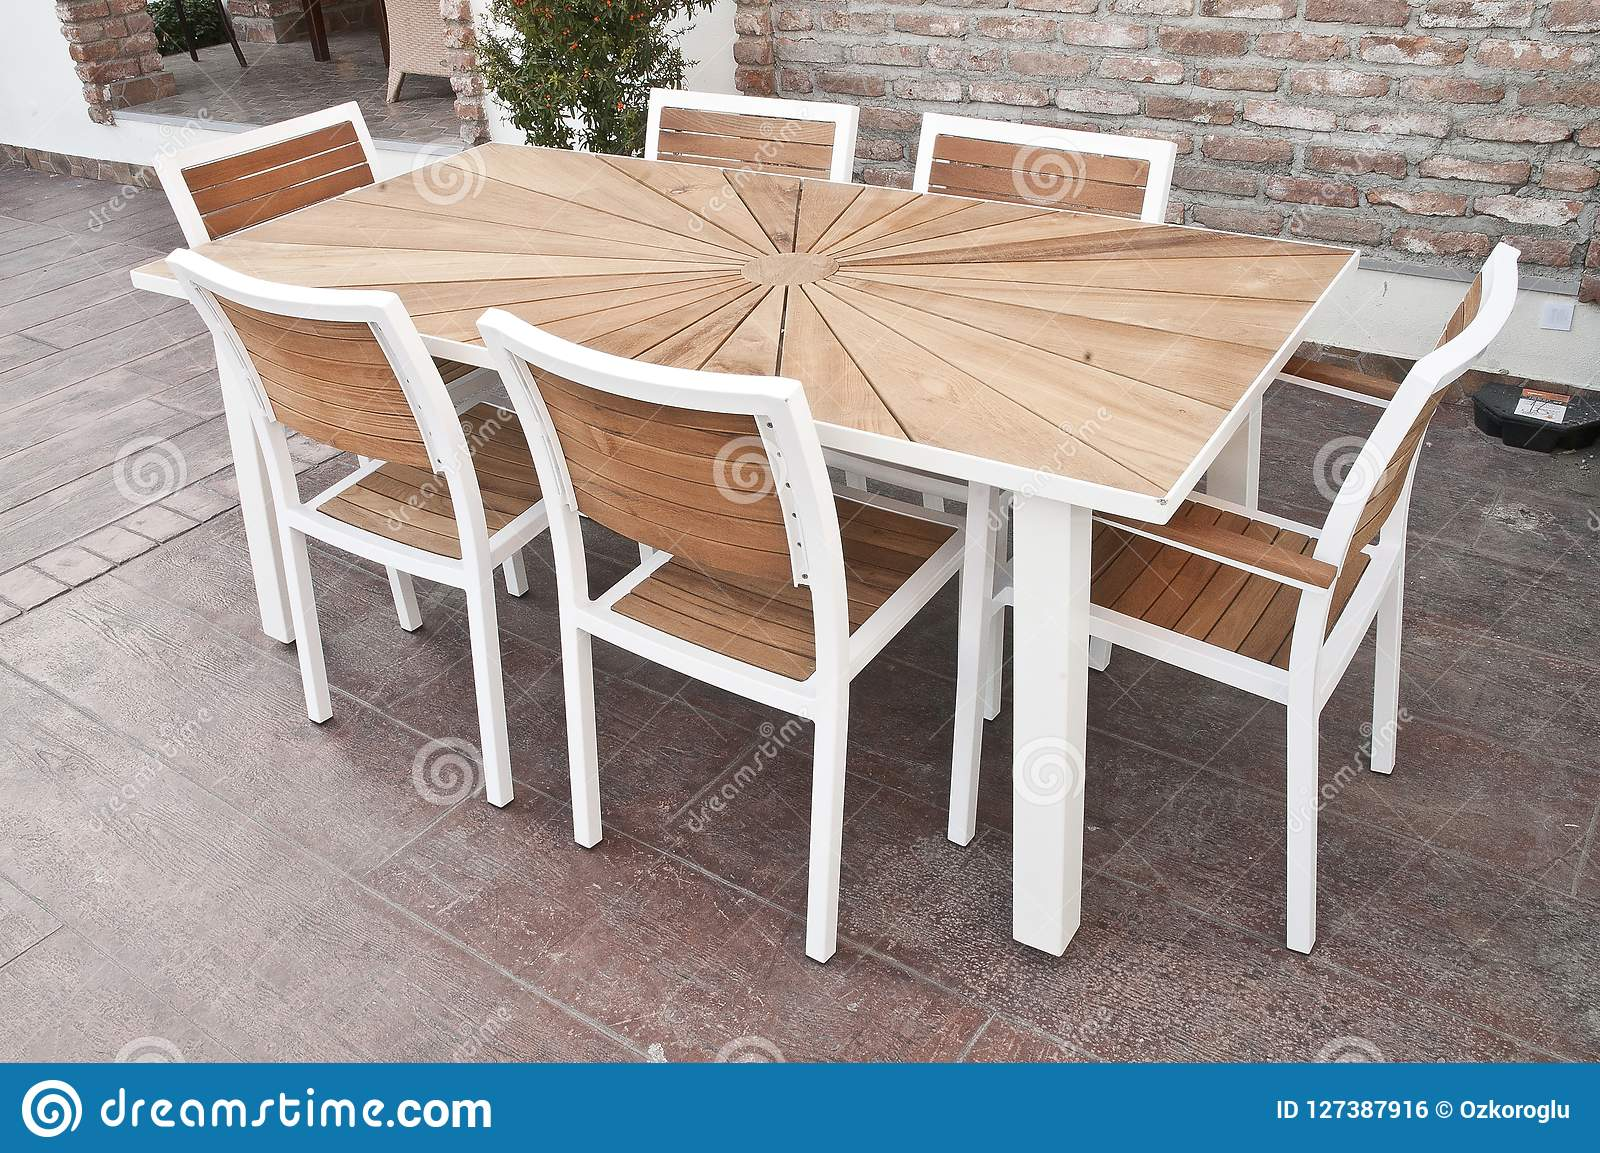 Metal And Wood Outdoor Patio Furniture For Dining Stock Photo Image Of Armchair Deck 127387916